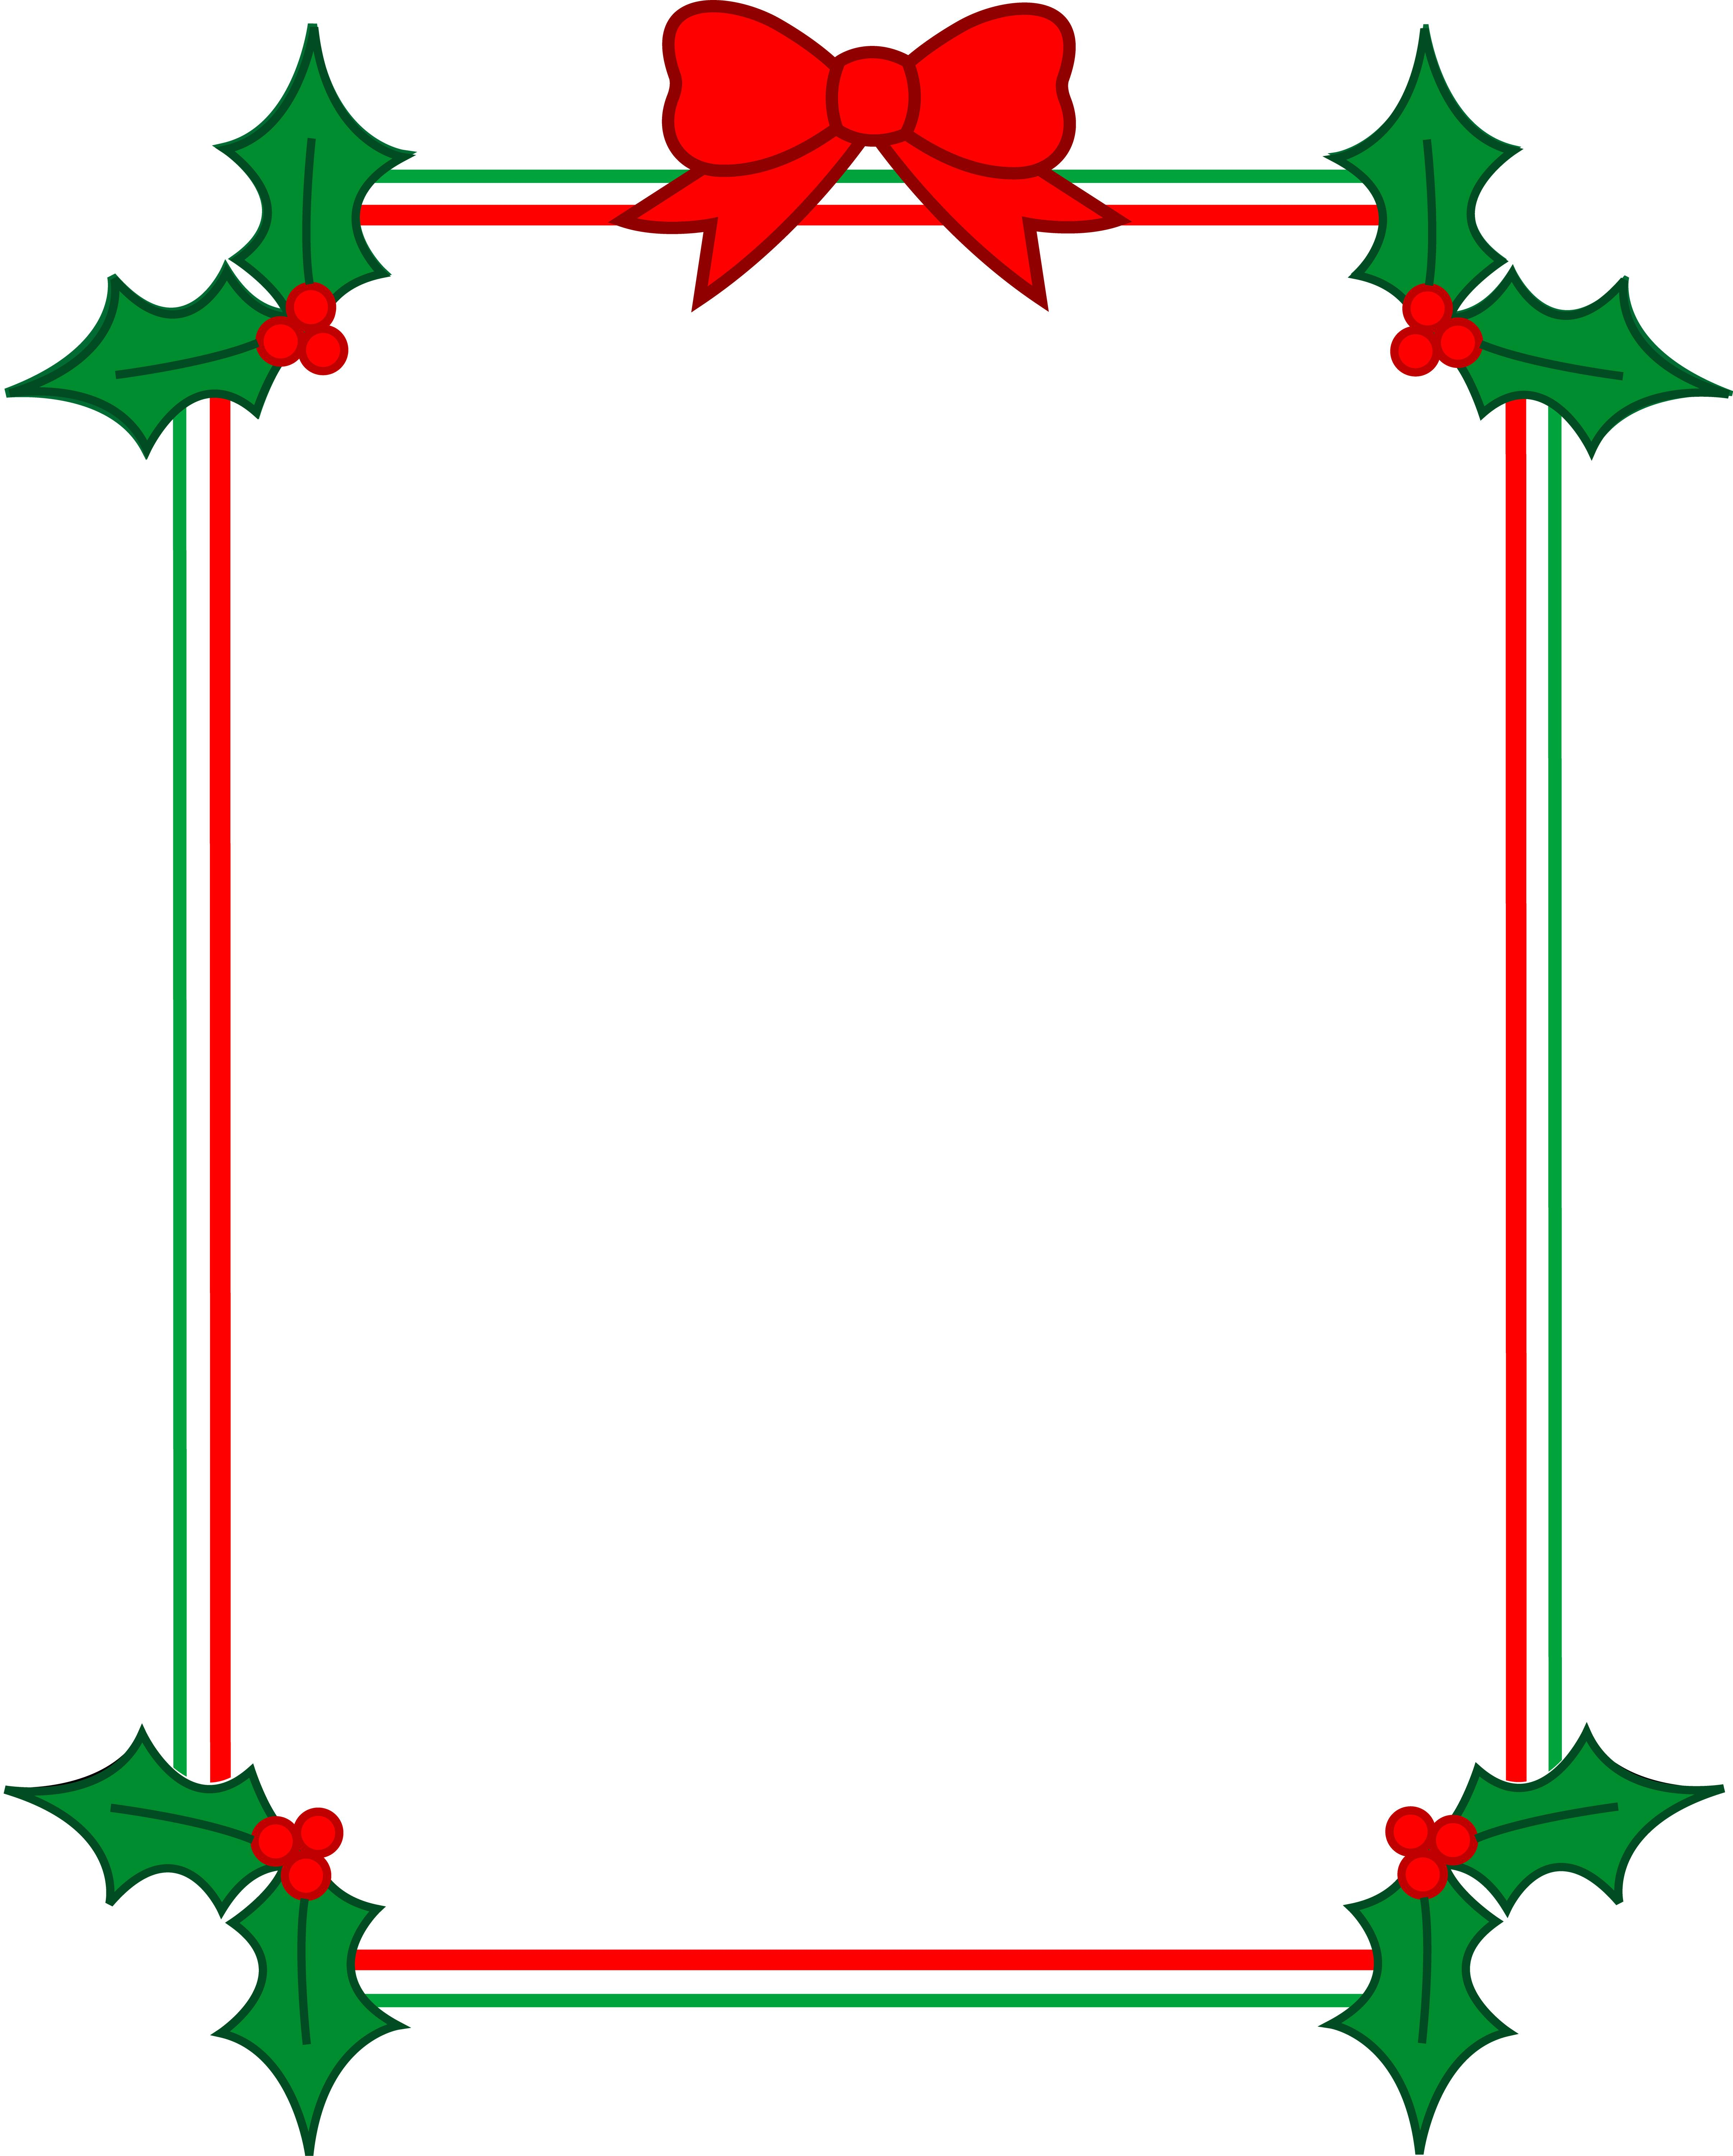 picture relating to Free Printable Christmas Clip Art named Cost-free Printable Xmas Borders Clip Artwork N7 absolutely free impression